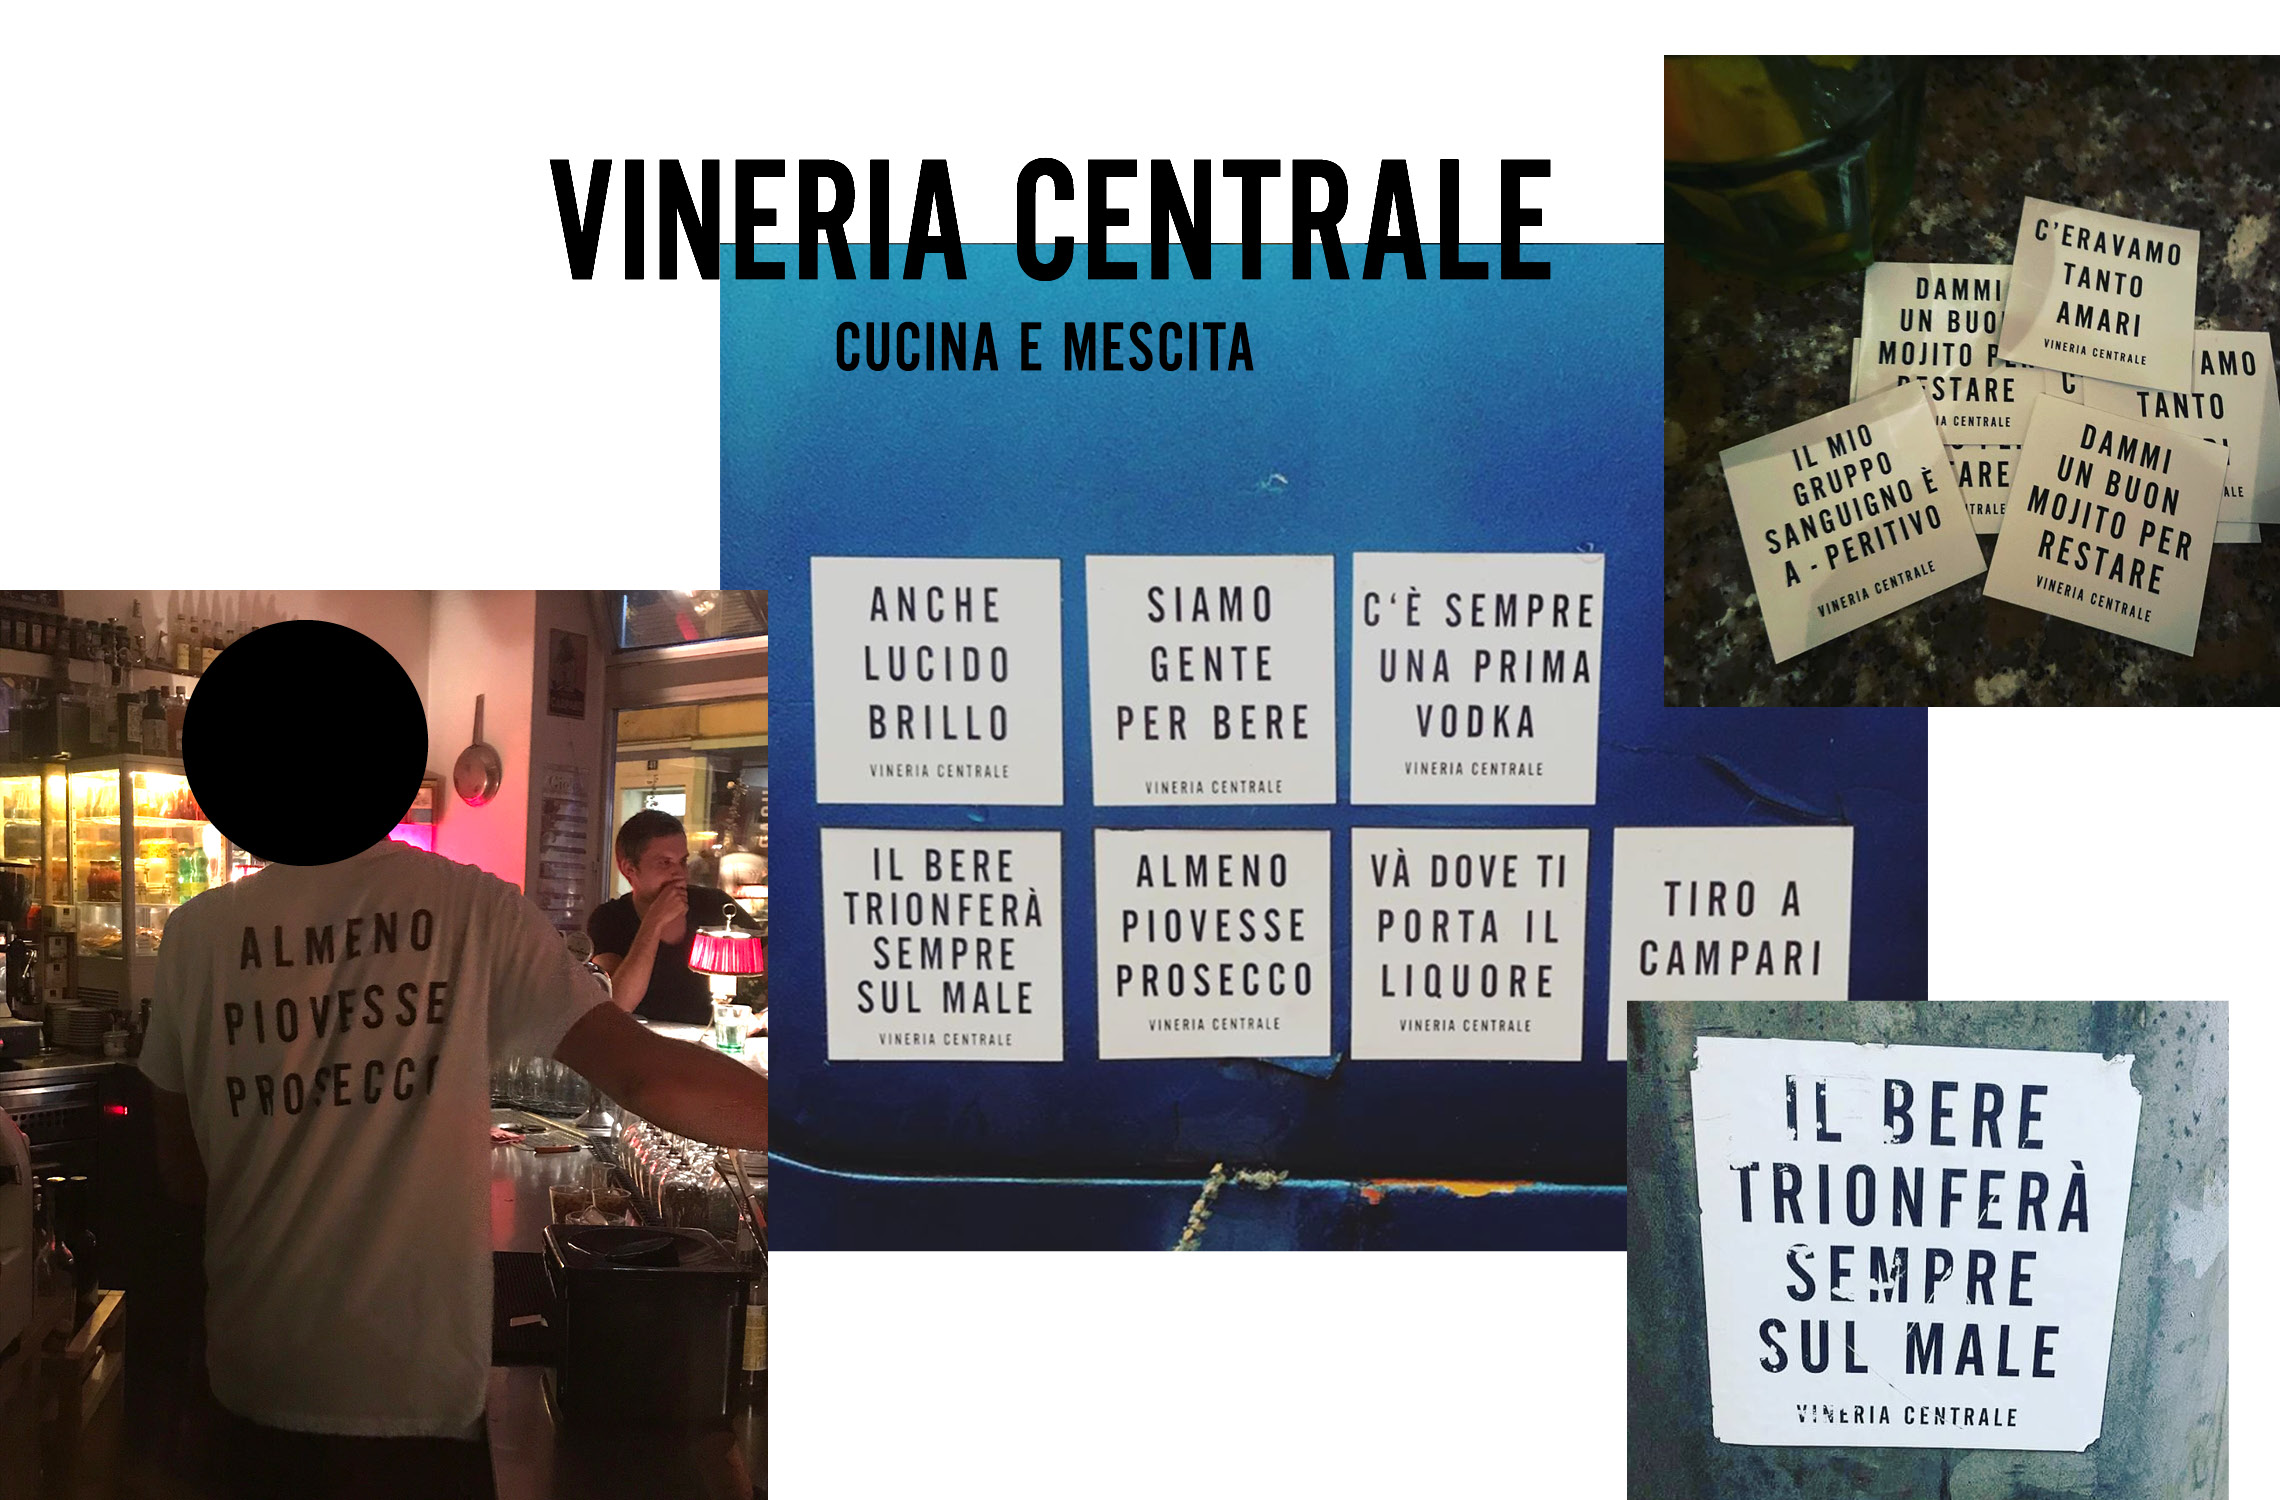 vineria-centrale---zrich-branding-pics-from-instagram